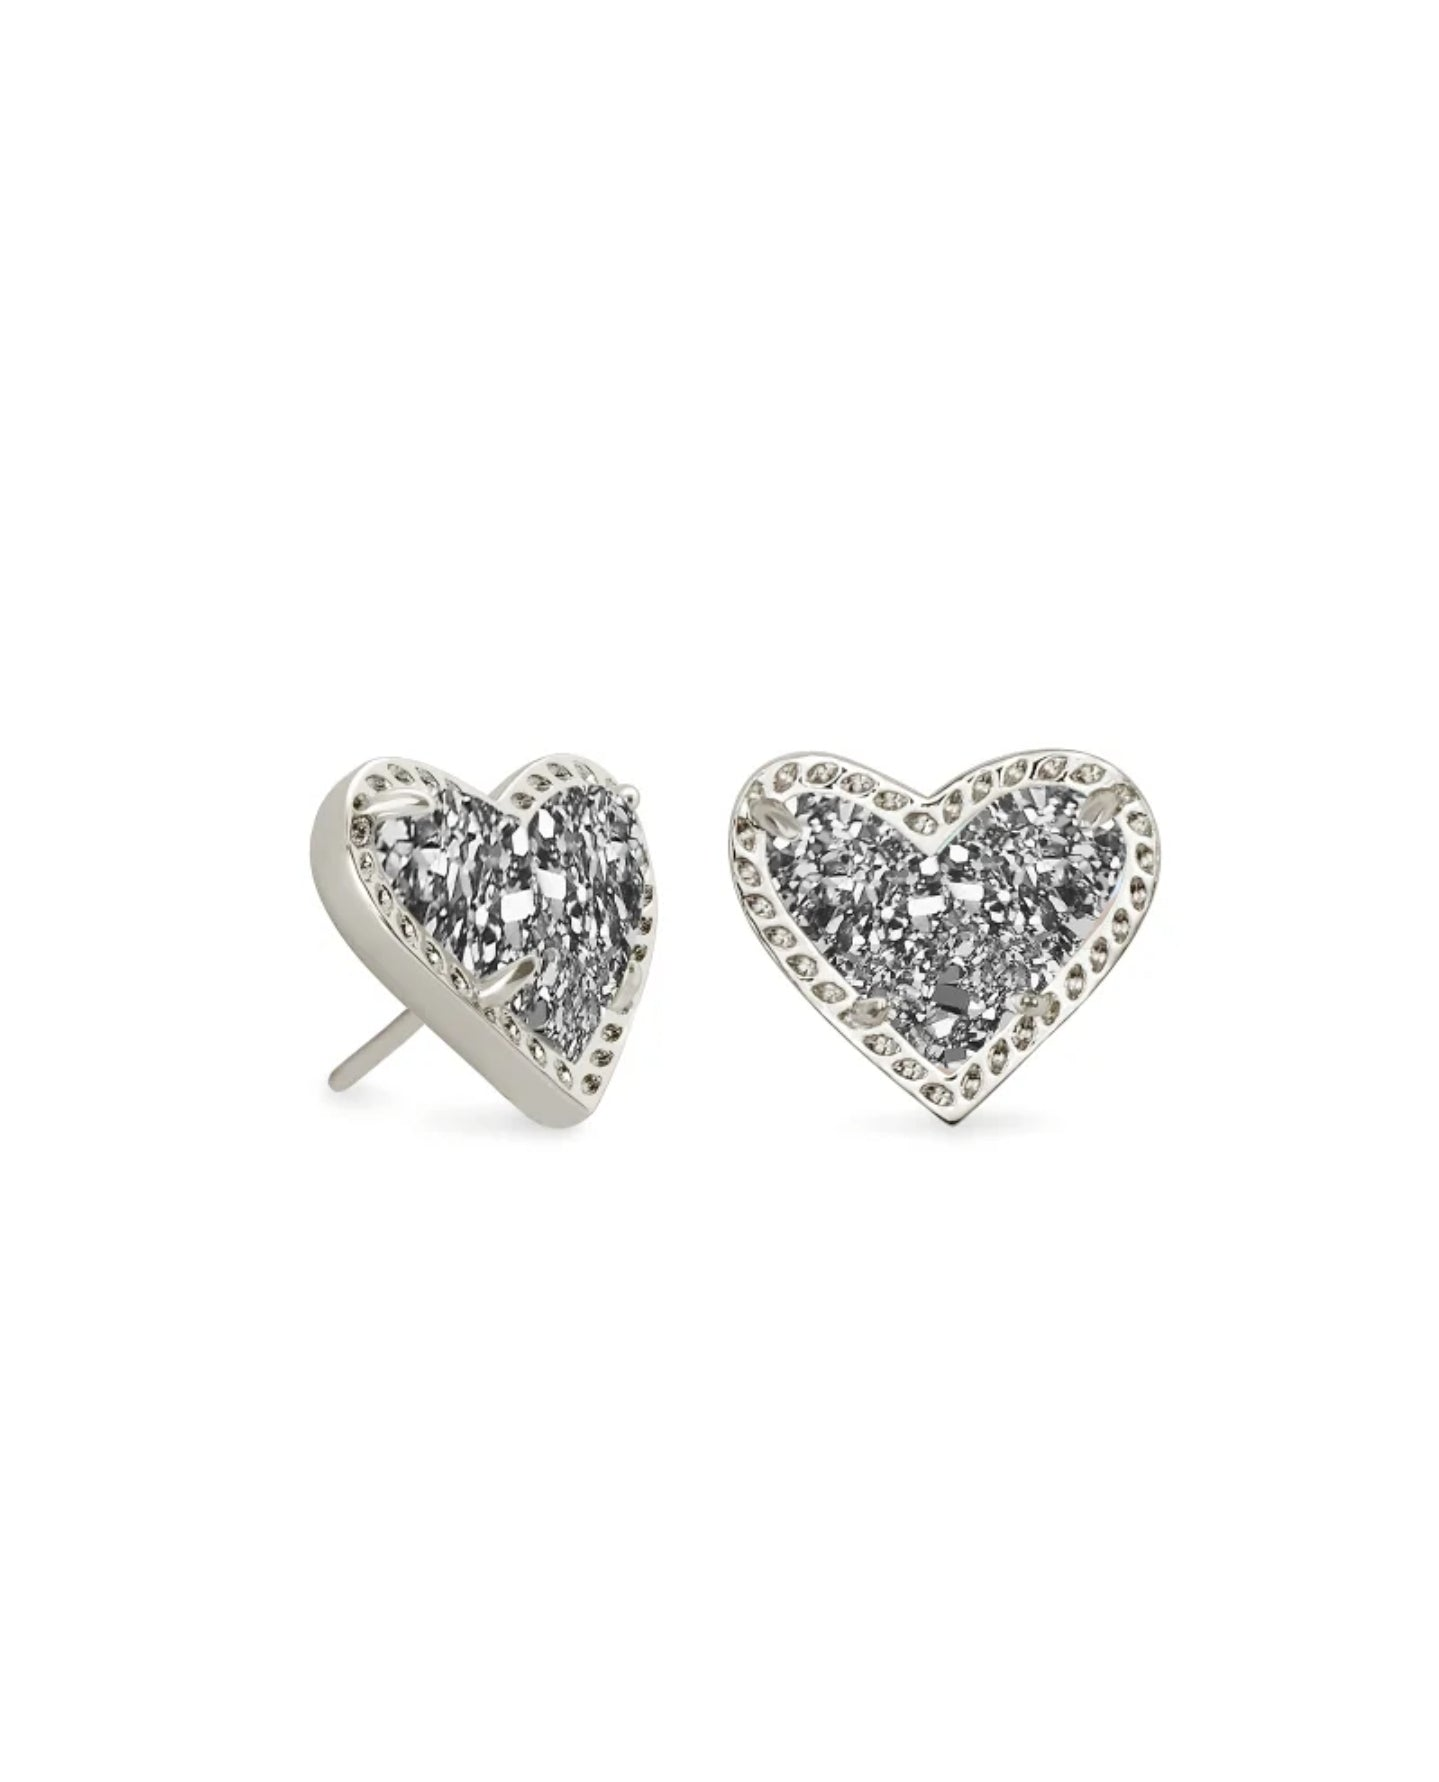 Ari Heart Gold Stud Earrings In Platinum Drusy